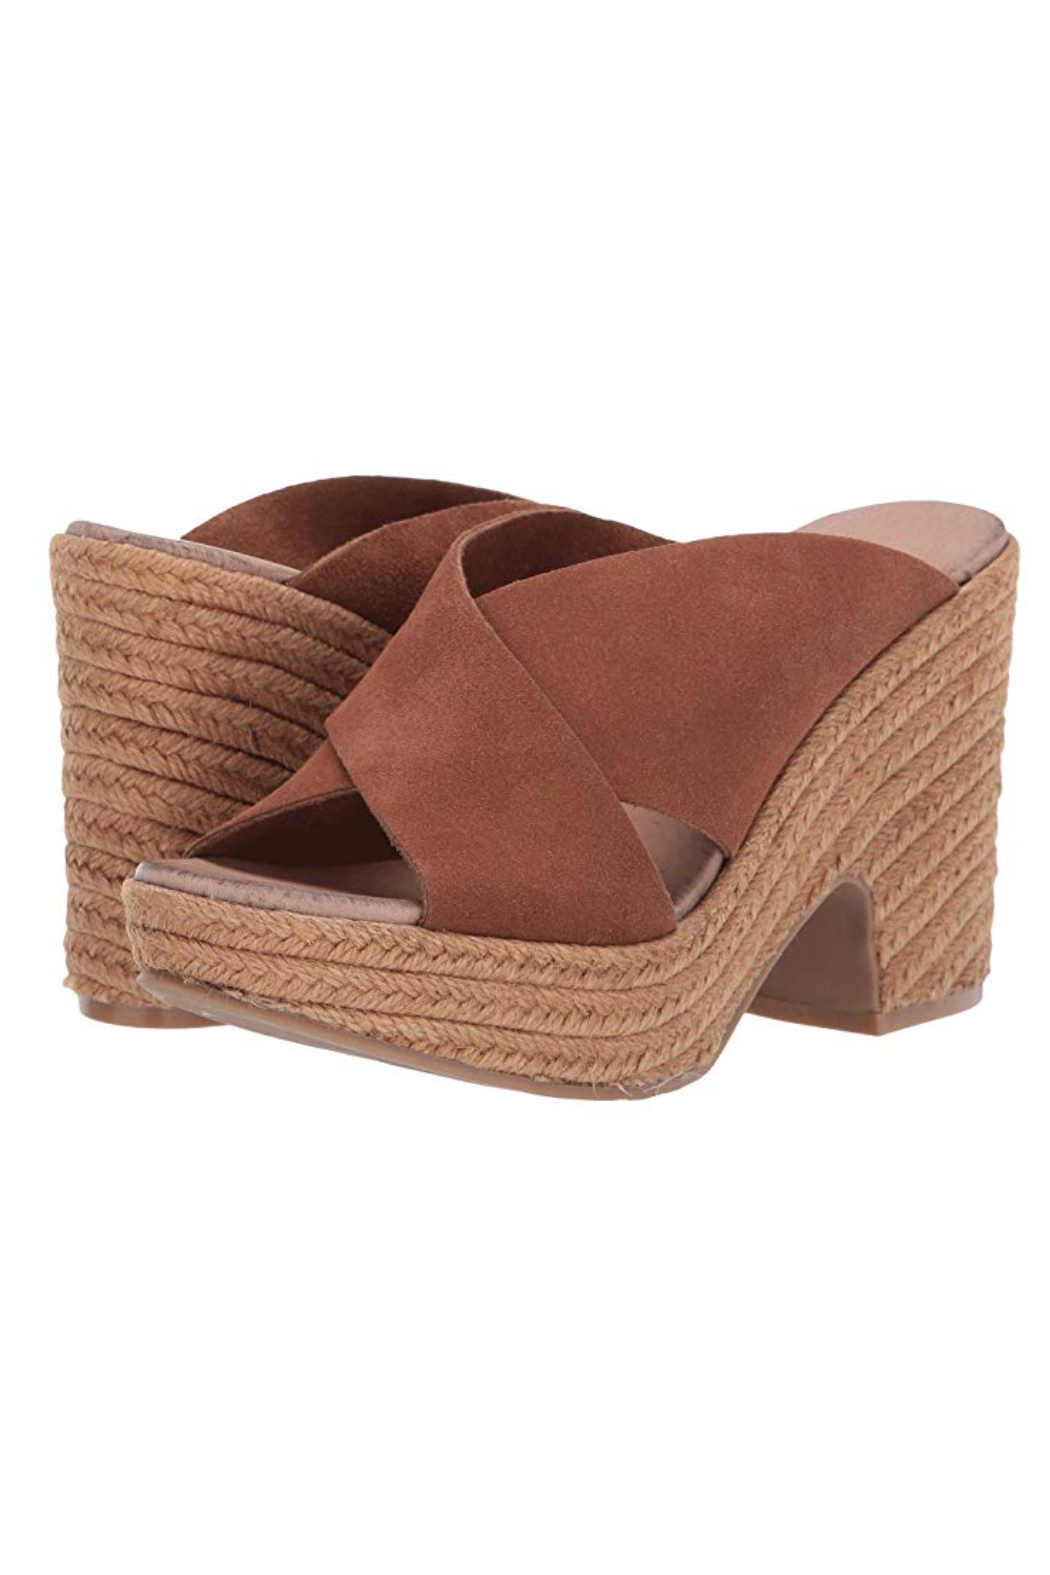 caa385b5a4 Chinese Laundry Quay Heeled Espadrille from Louisiana by Bella Bella ...